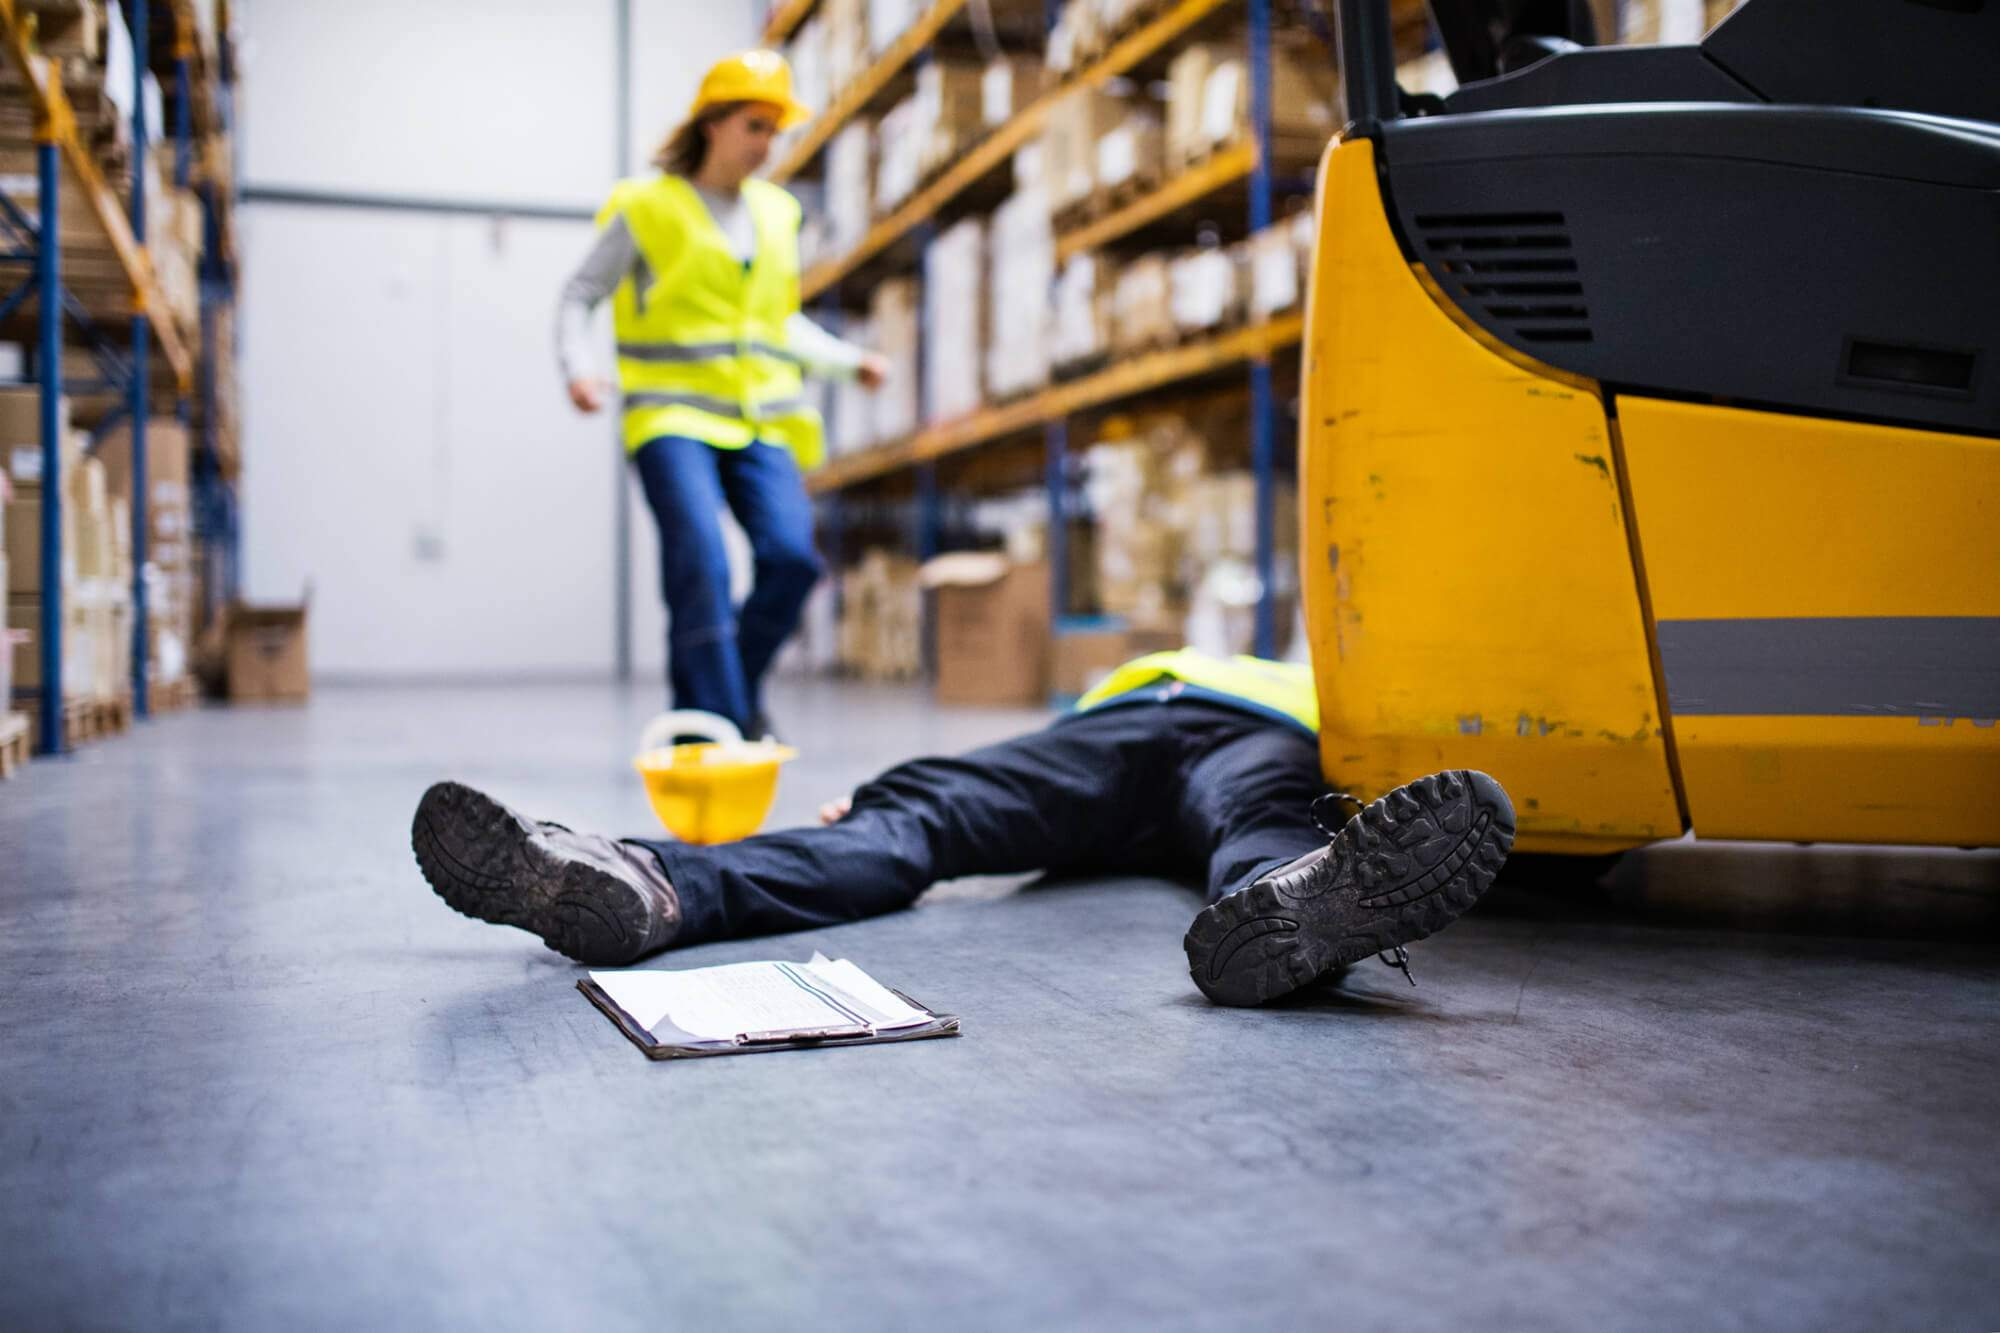 Crane/Forklift Accidents